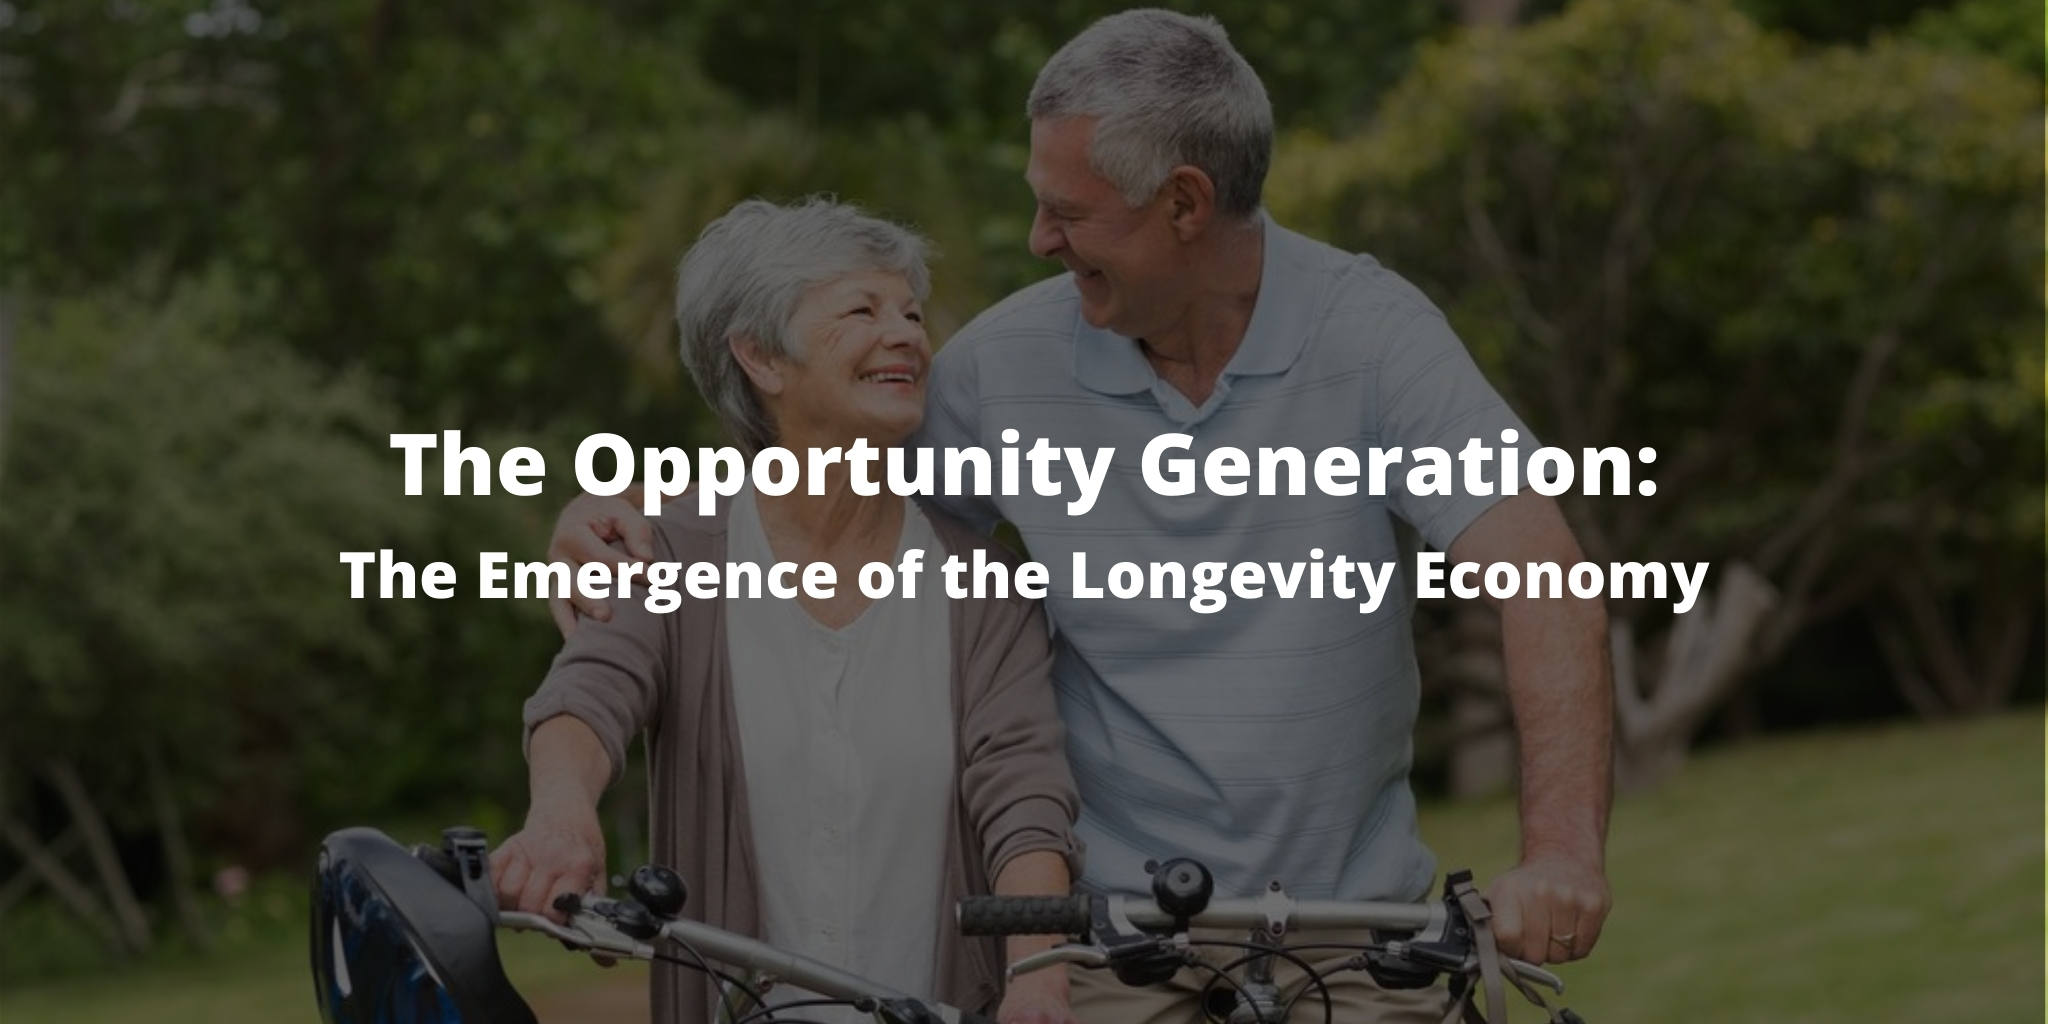 The Opportunity Generation: The Emergence of the Longevity Economy